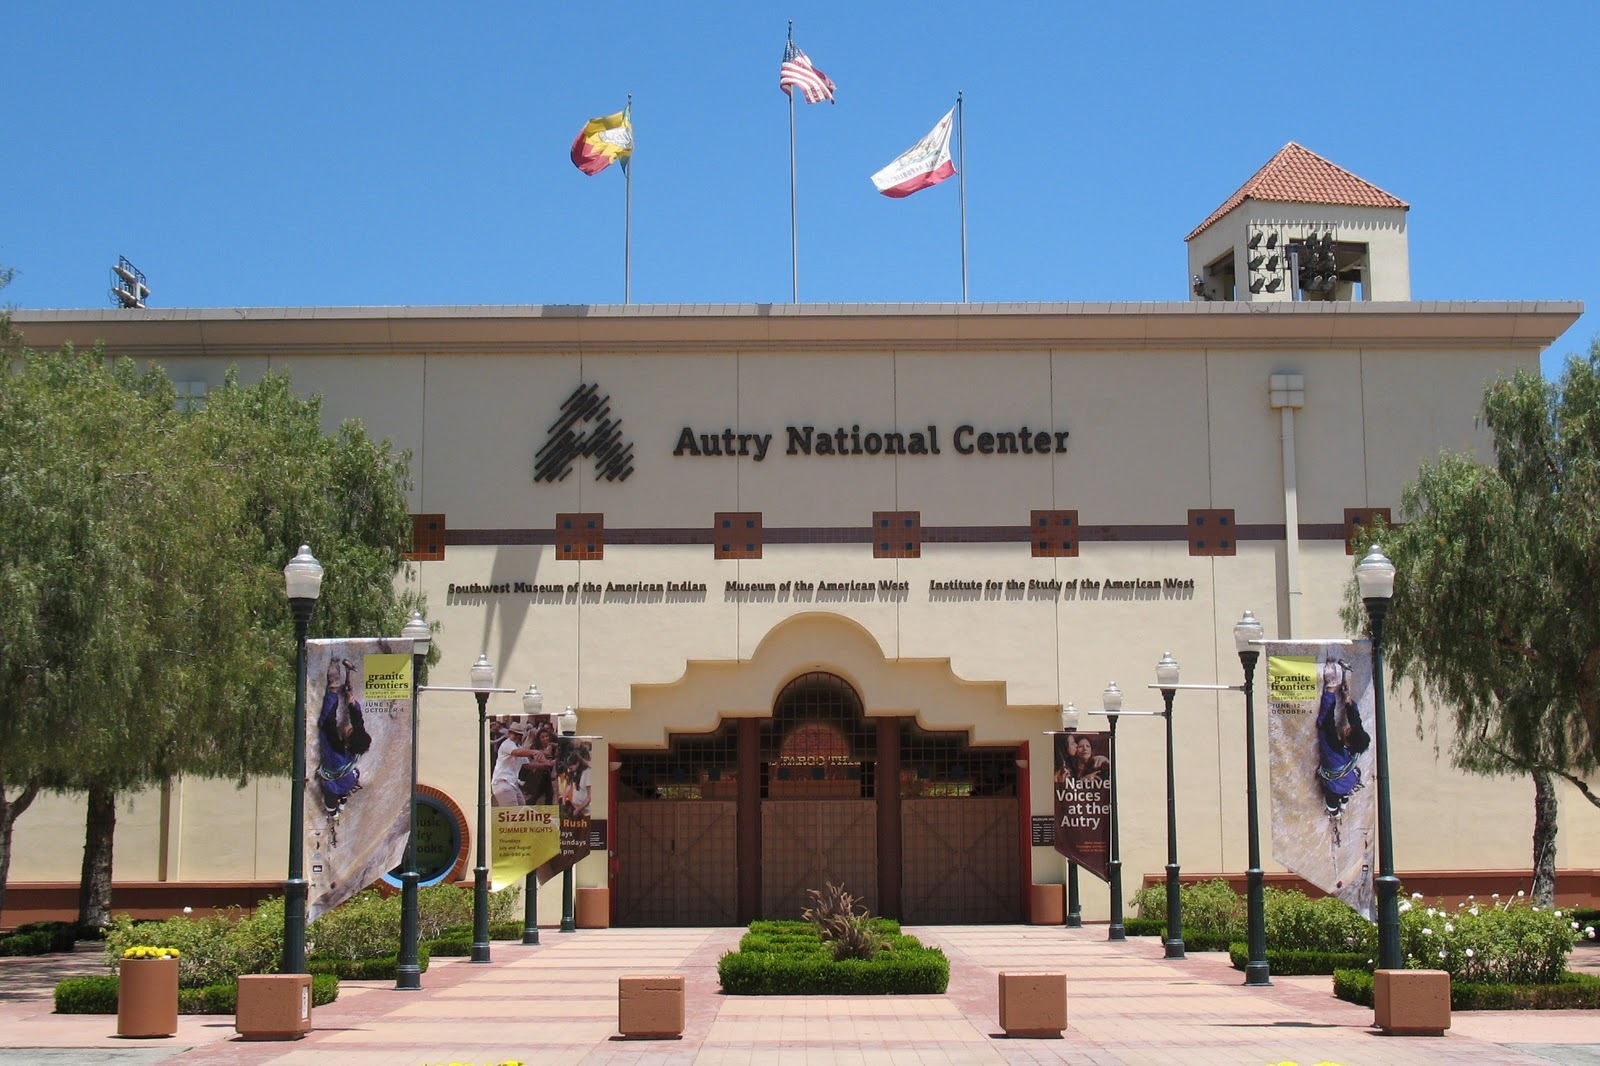 Autry National Center